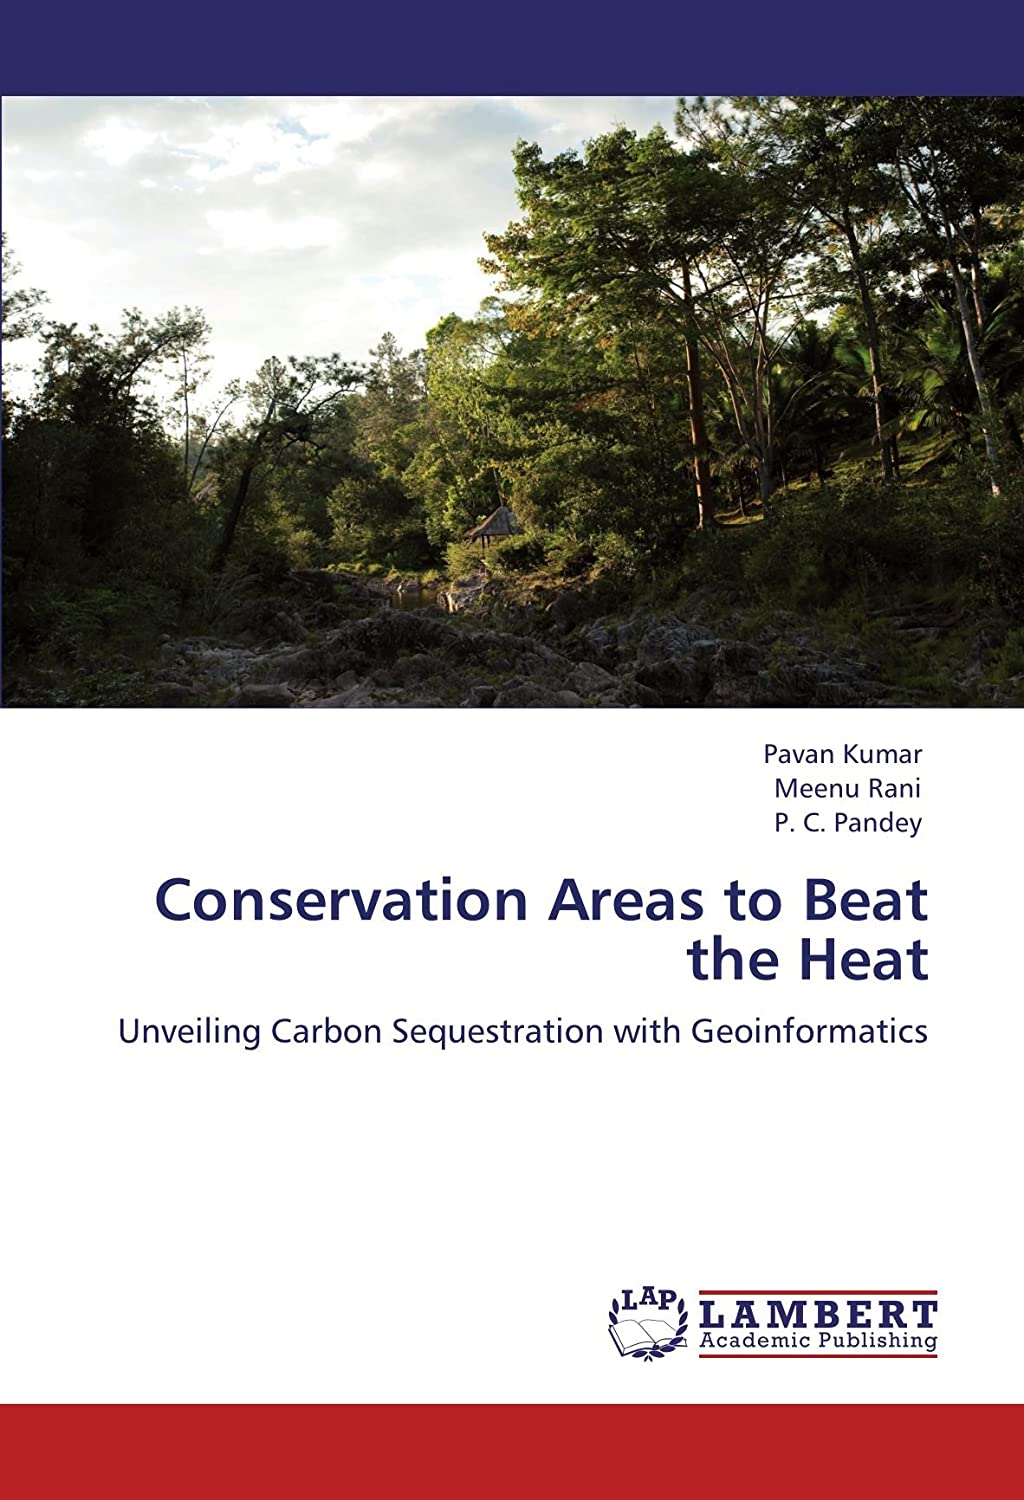 Conservation Areas to Beat the Heat